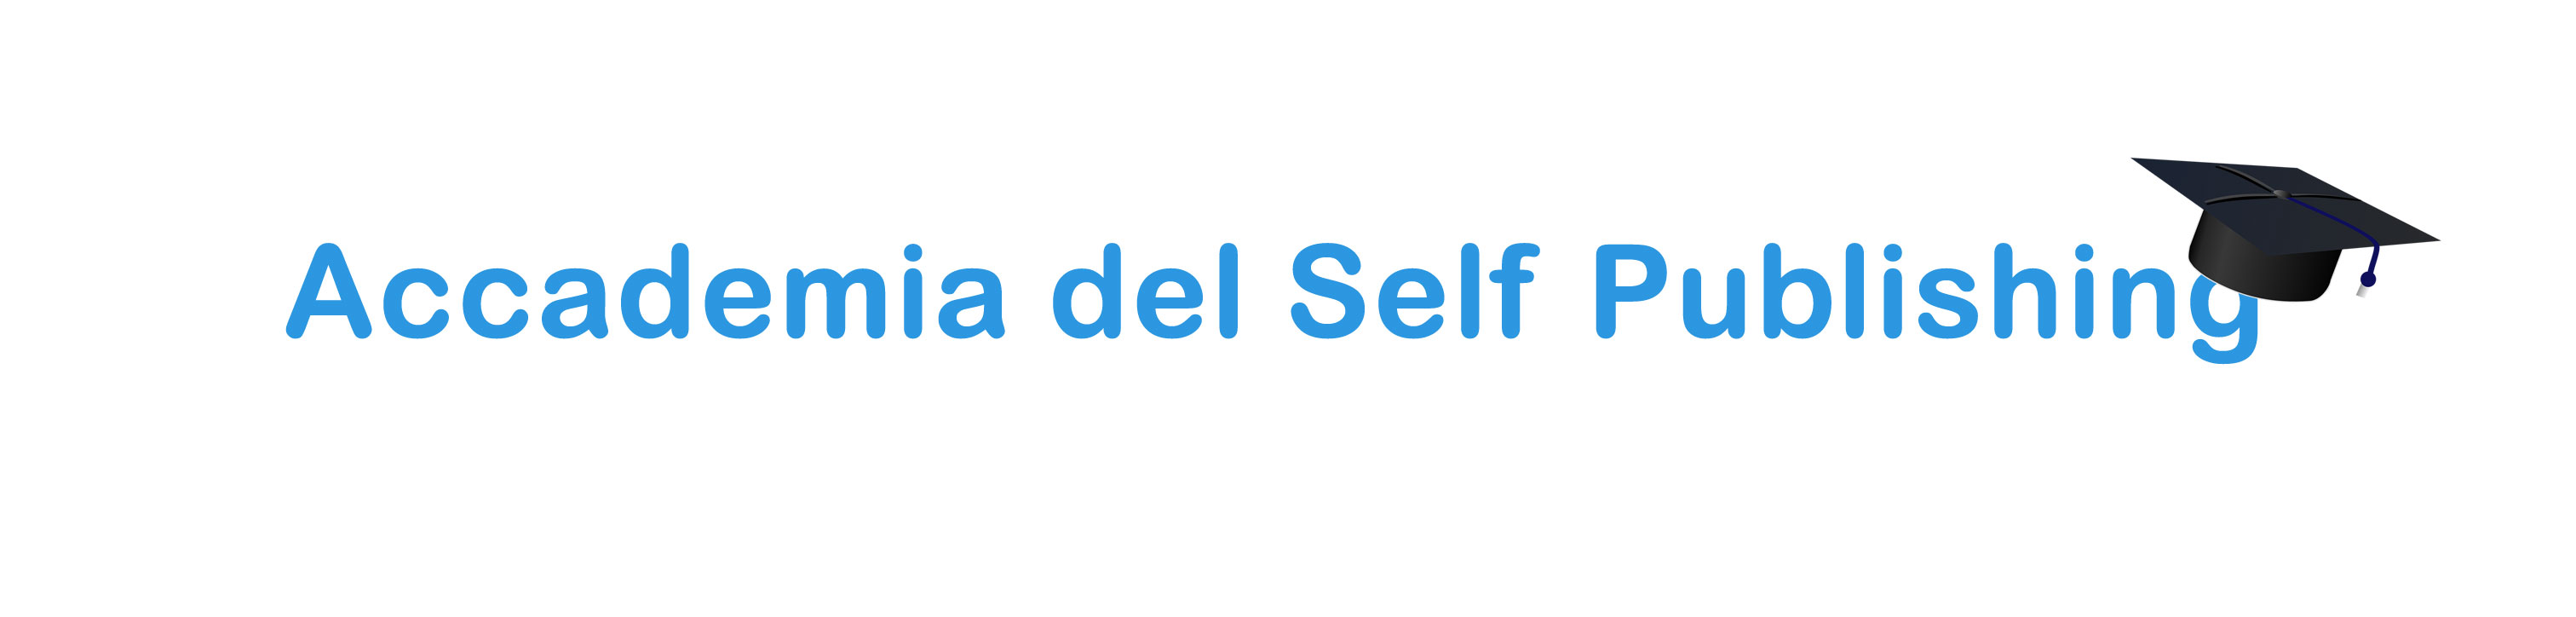 L'Accademia del Self Publishing